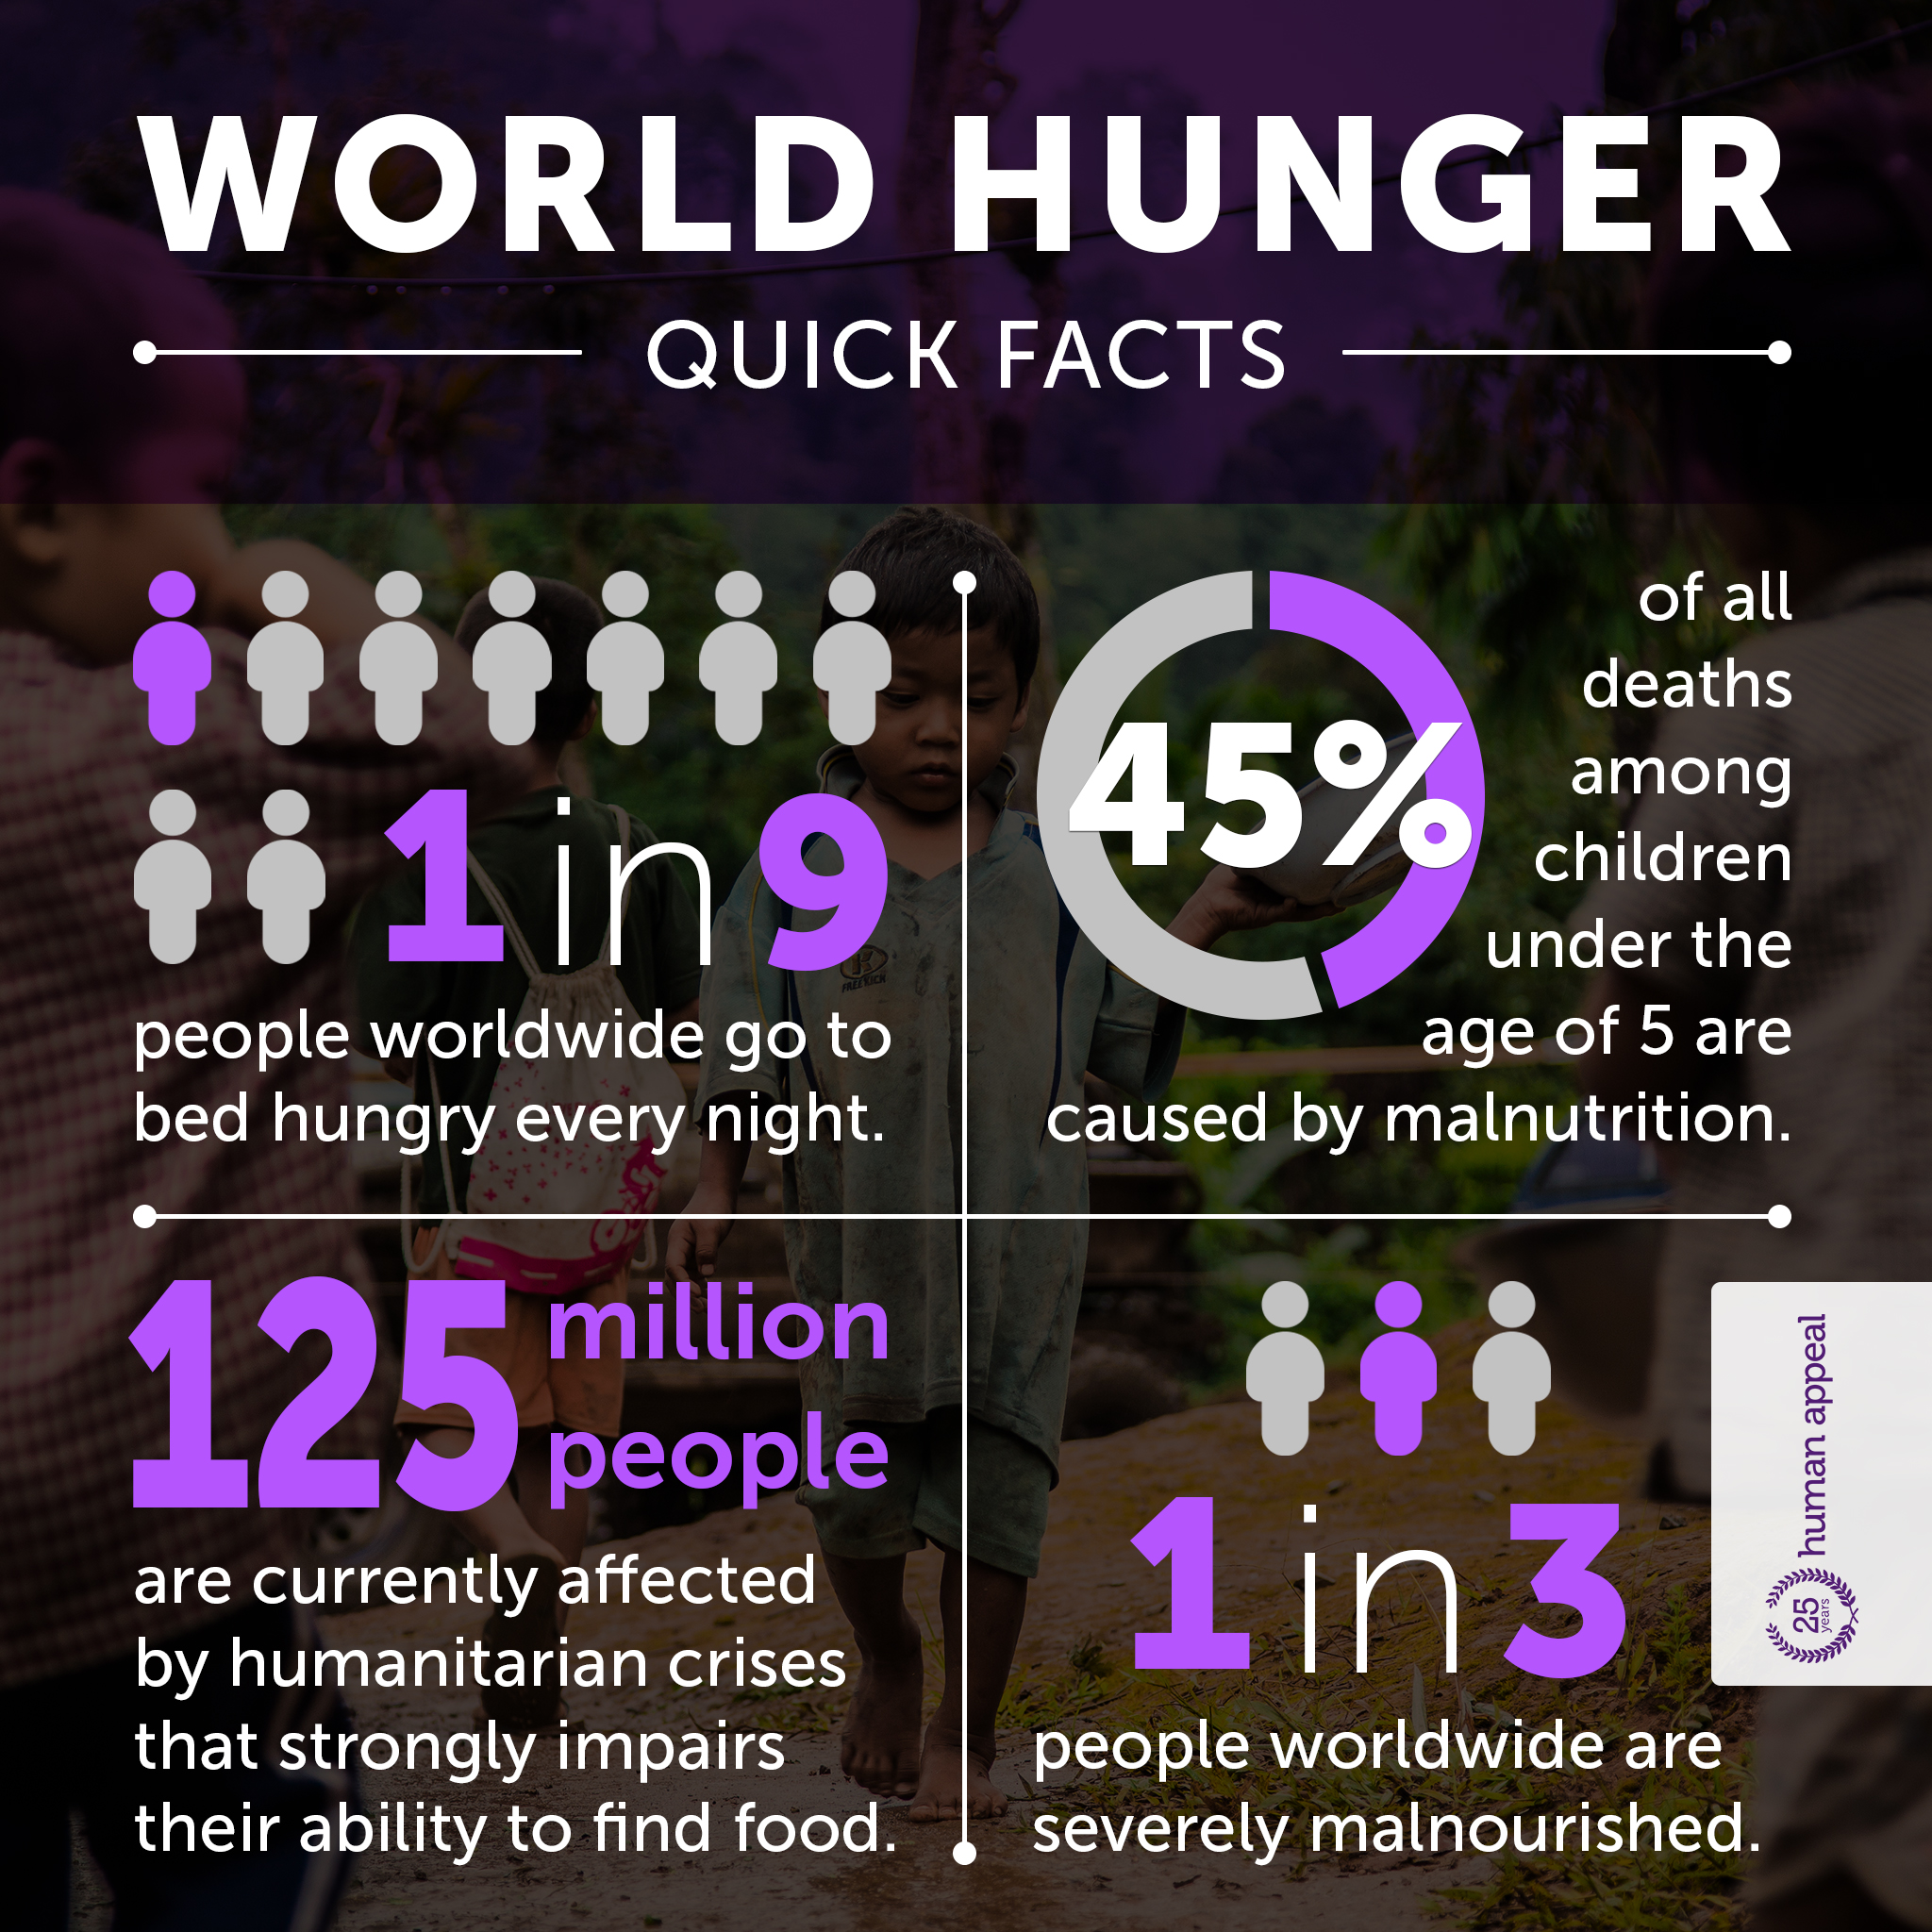 world hunger quick facts